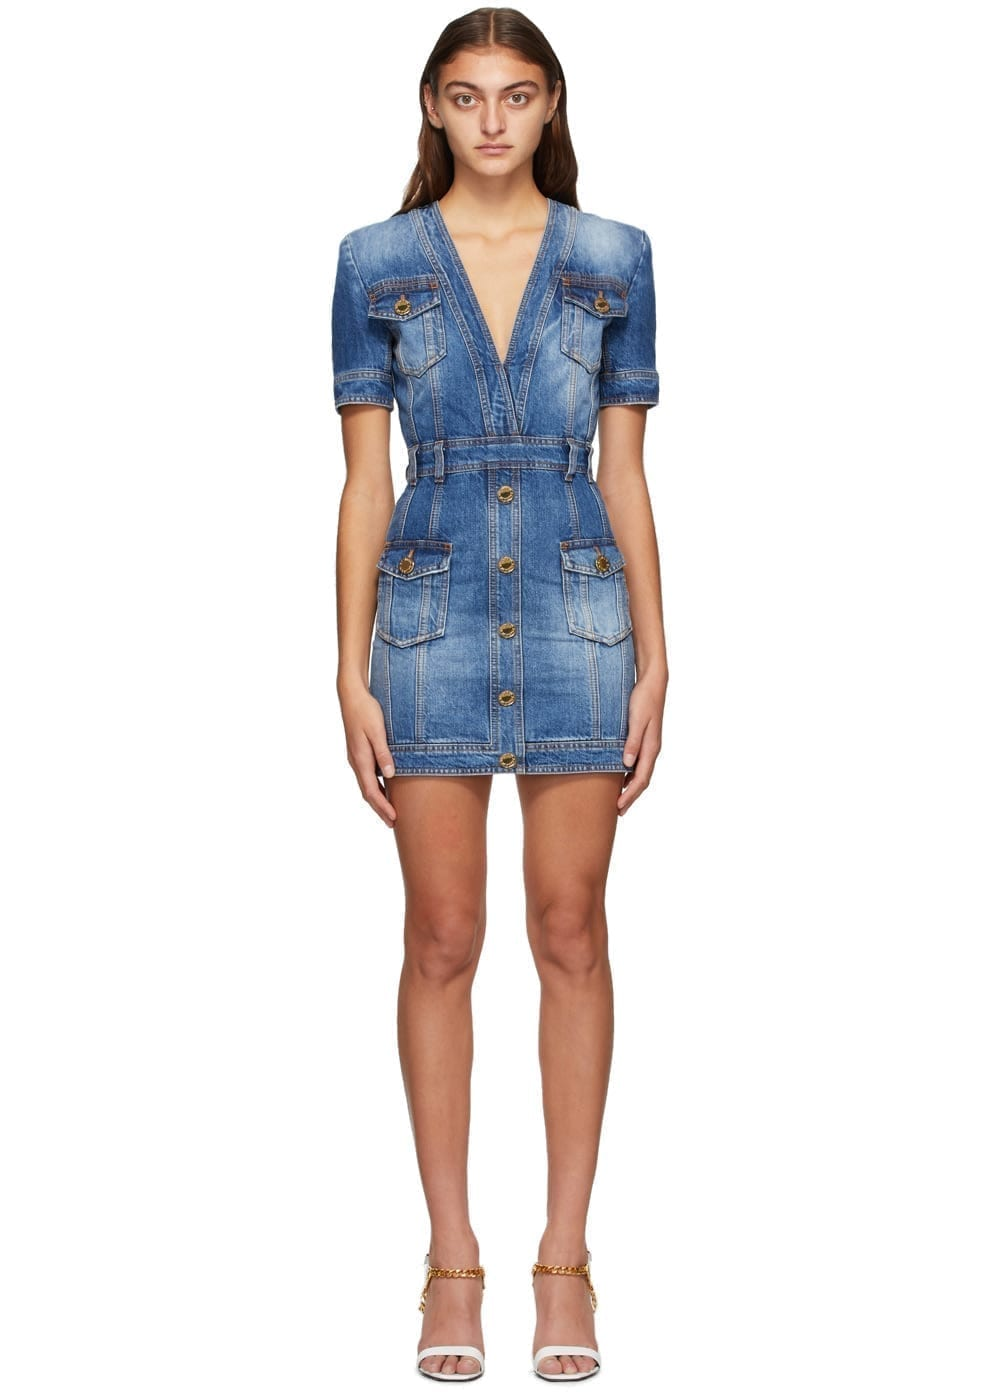 BALMAIN Blue Denim Vintage V-Neck Dress